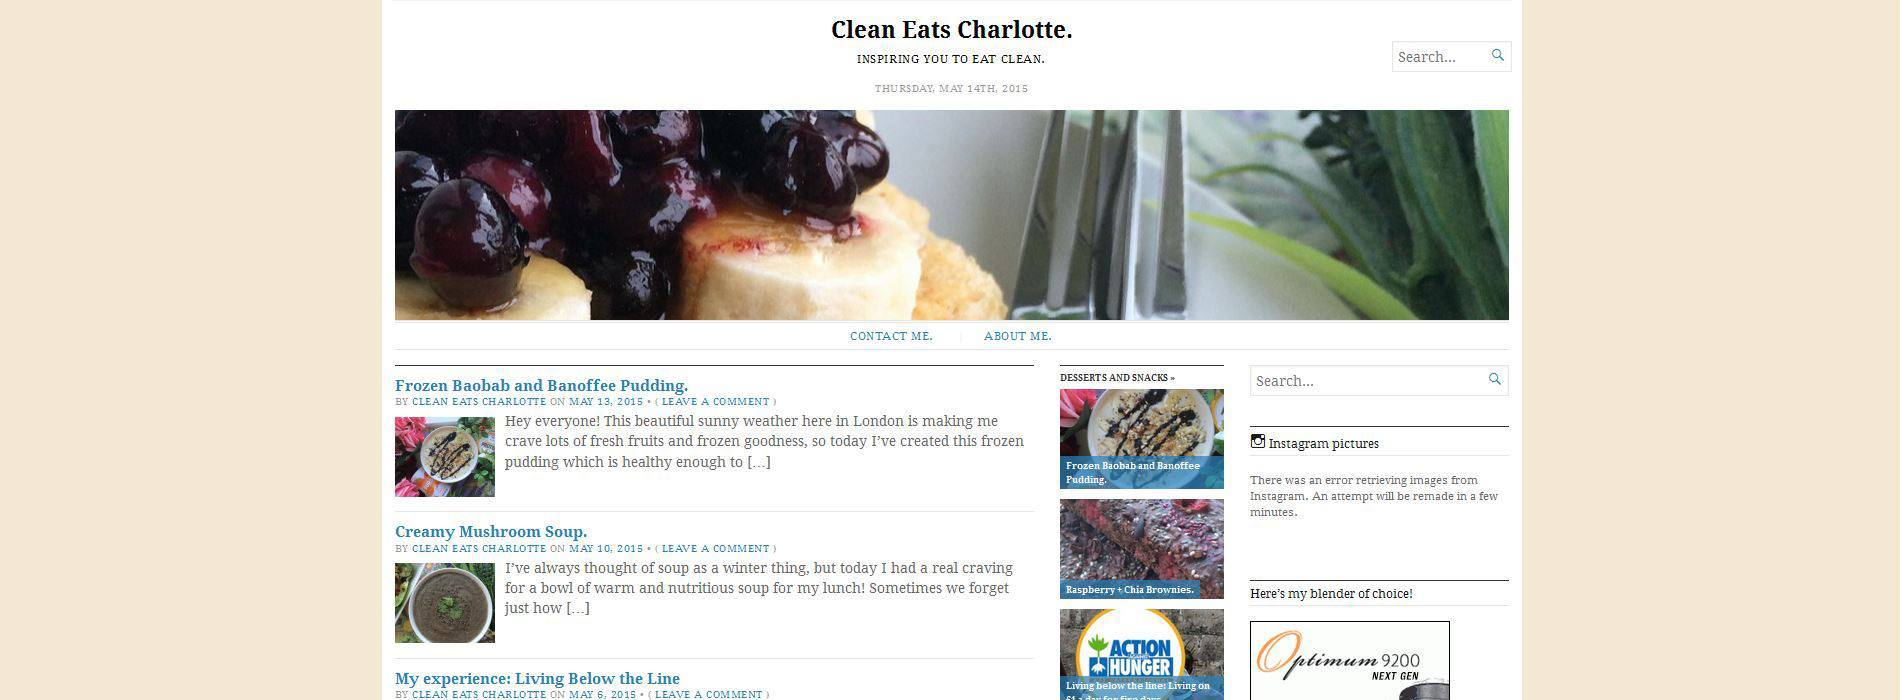 Clean Eats Charlotte Blog